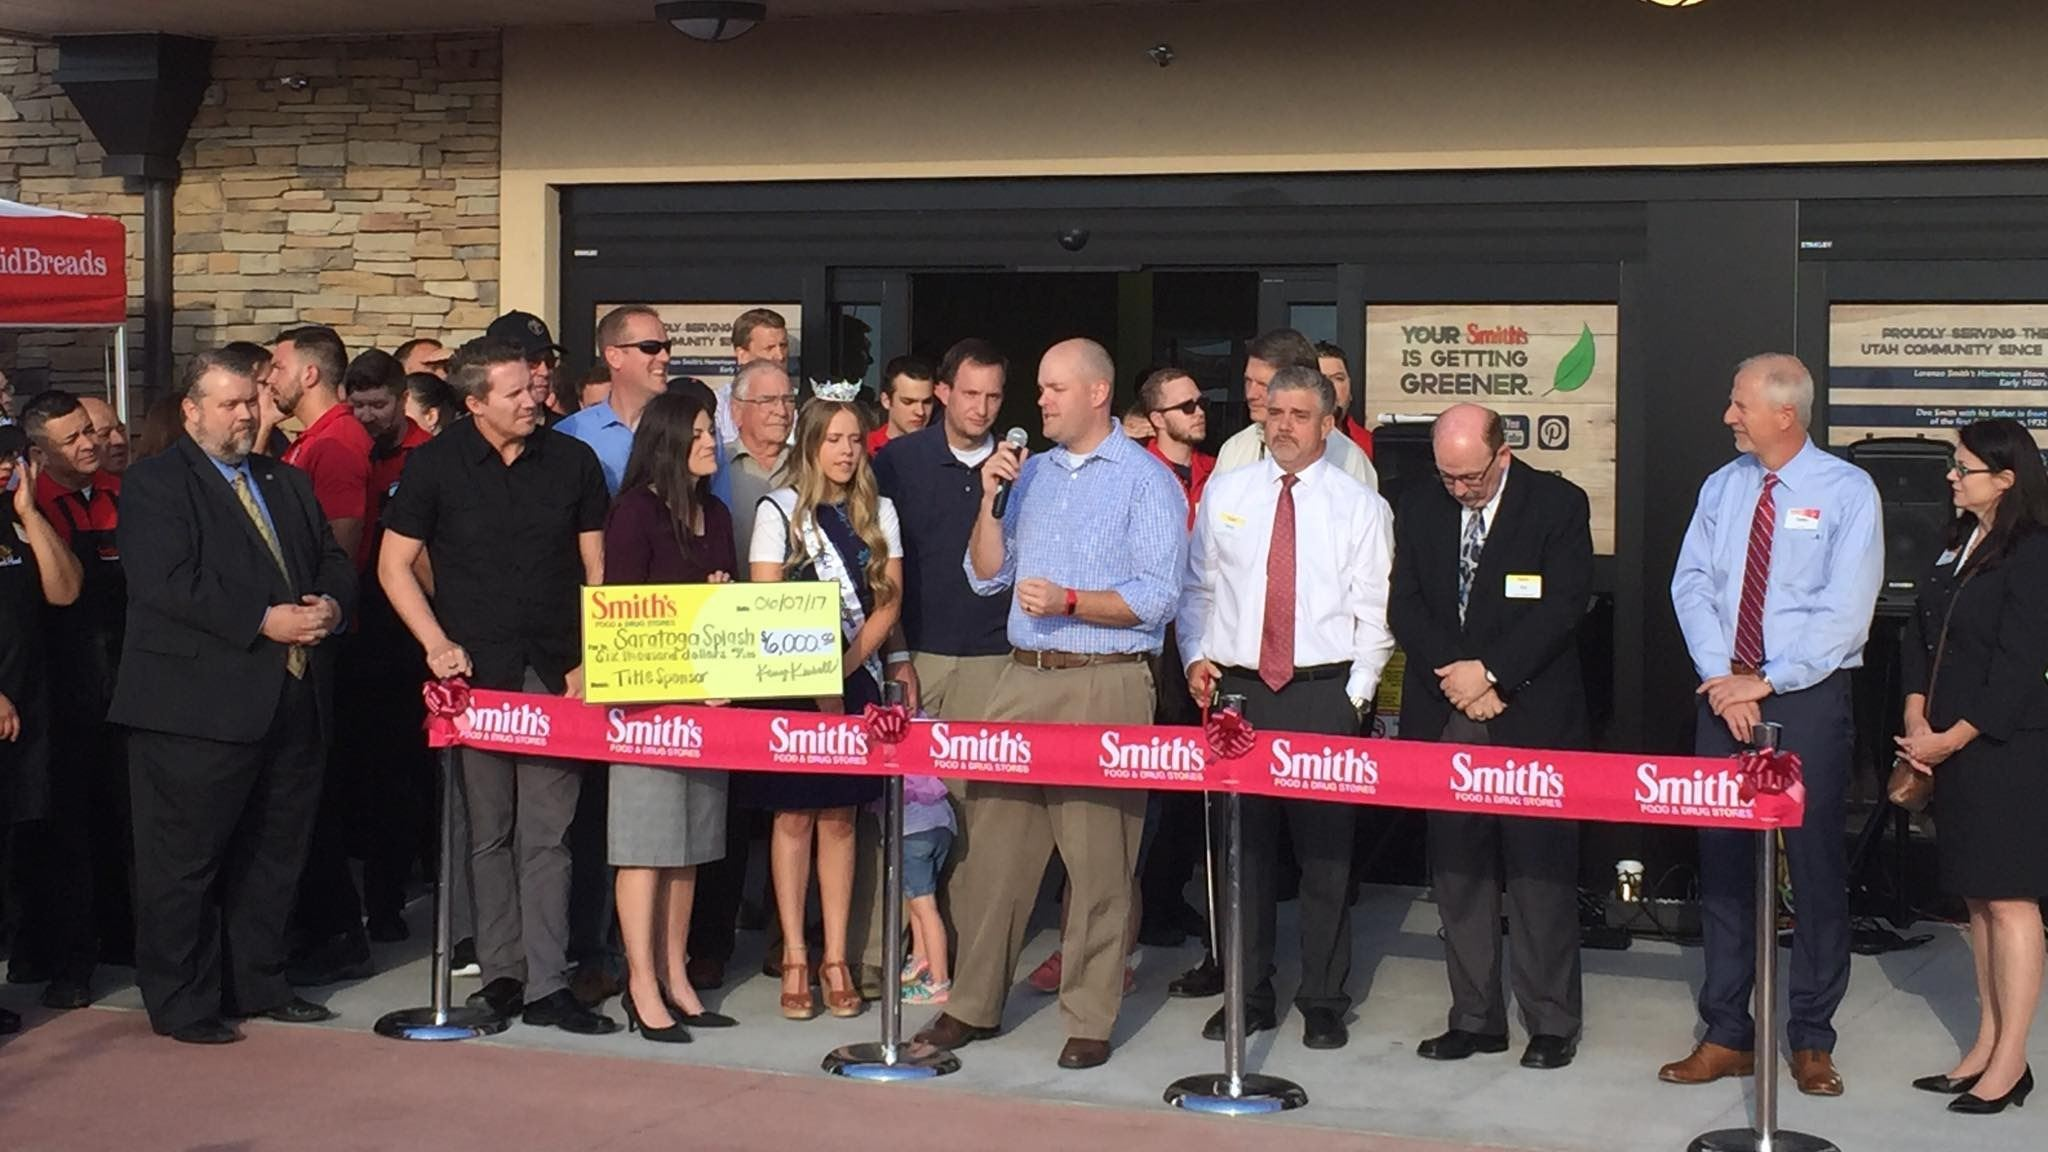 Smith's Grand Opening